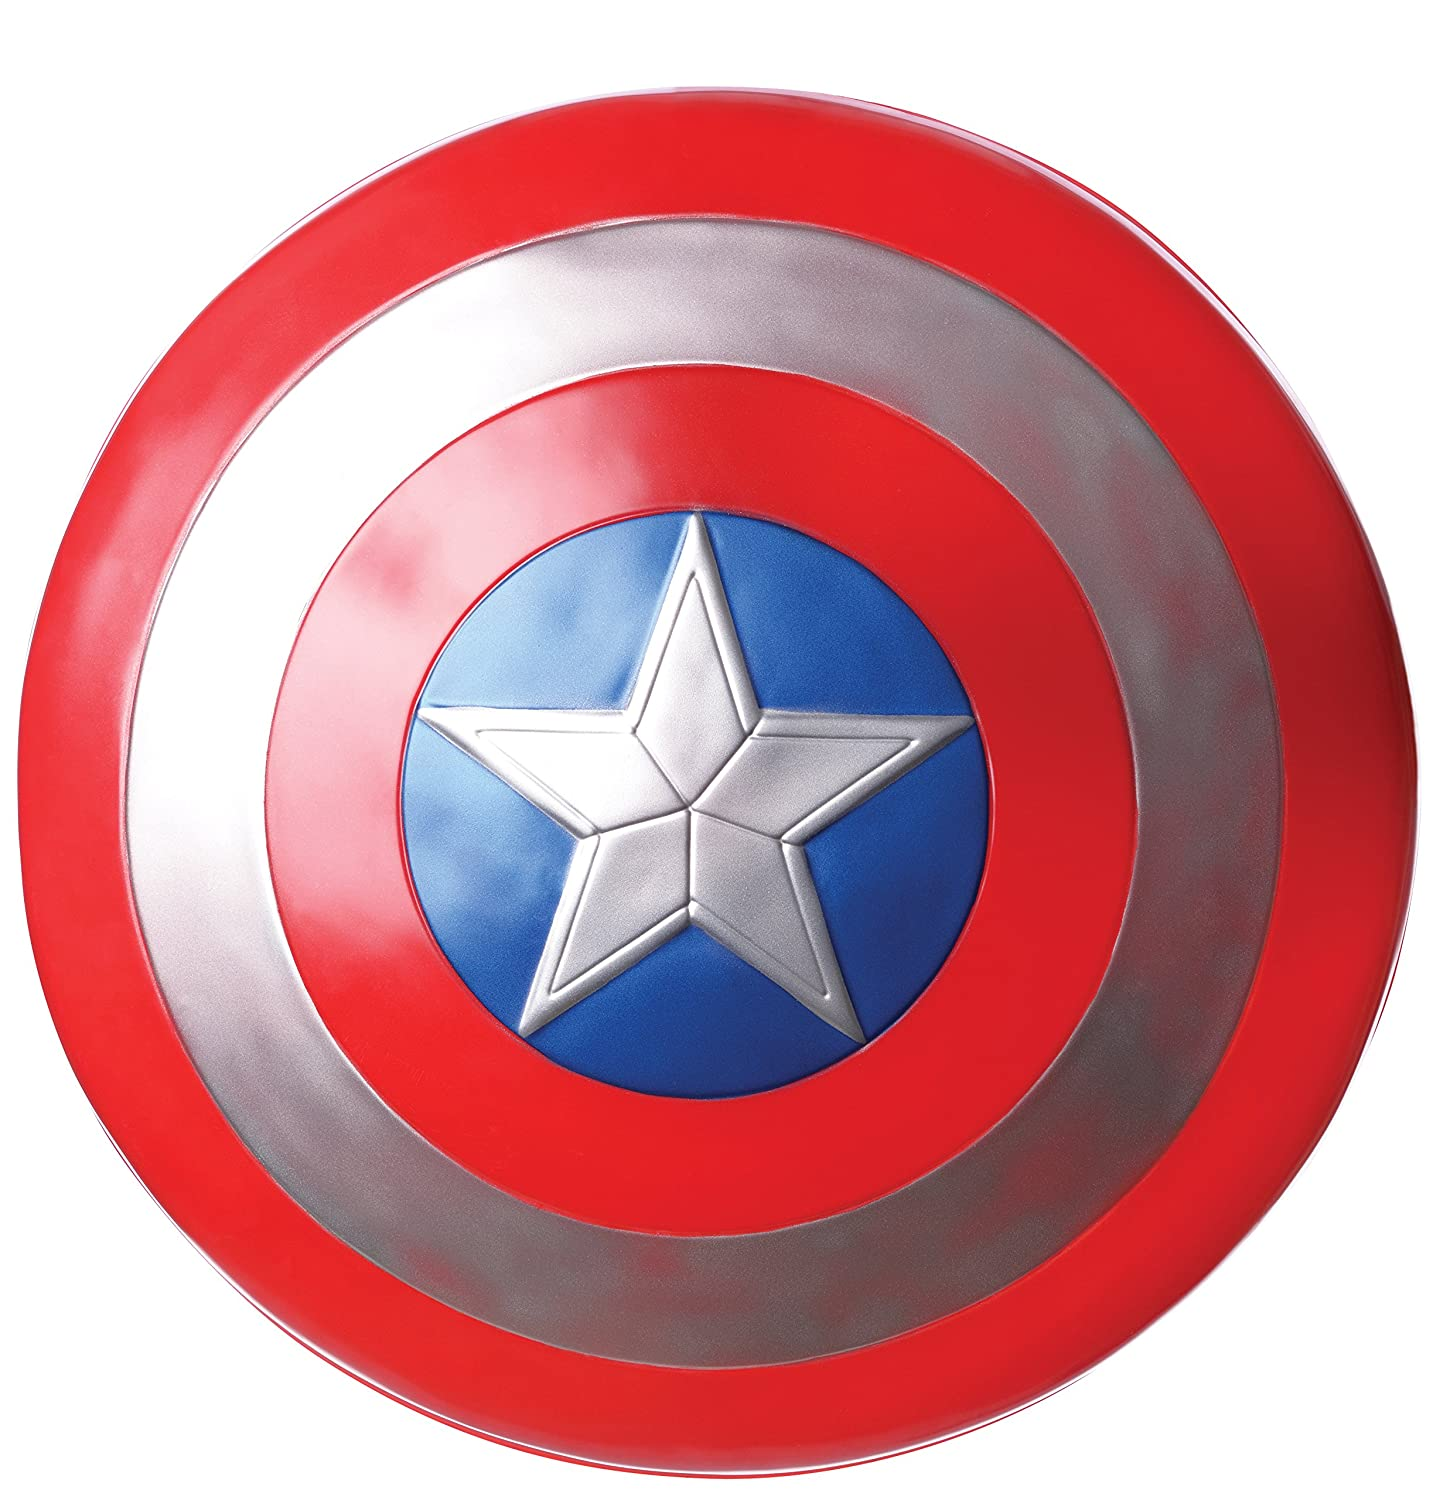 Rubie's Costume Co Avengers 2 Age of Ultron Captain America 24-inch Shield Multi One Size Rubies Costumes - Apparel 36241